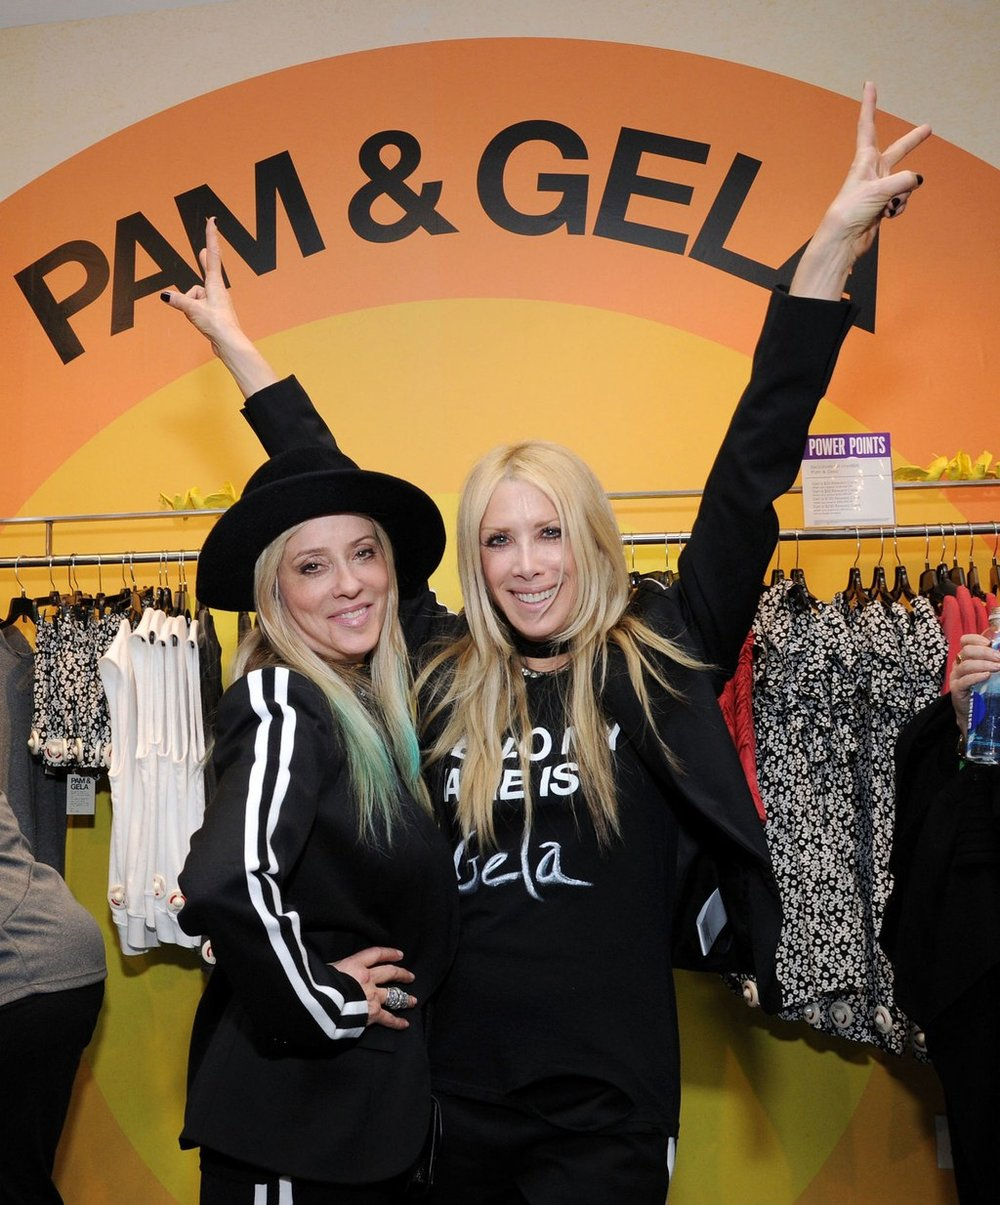 fashion-2014-03-pam-gela-launch-main.jpg